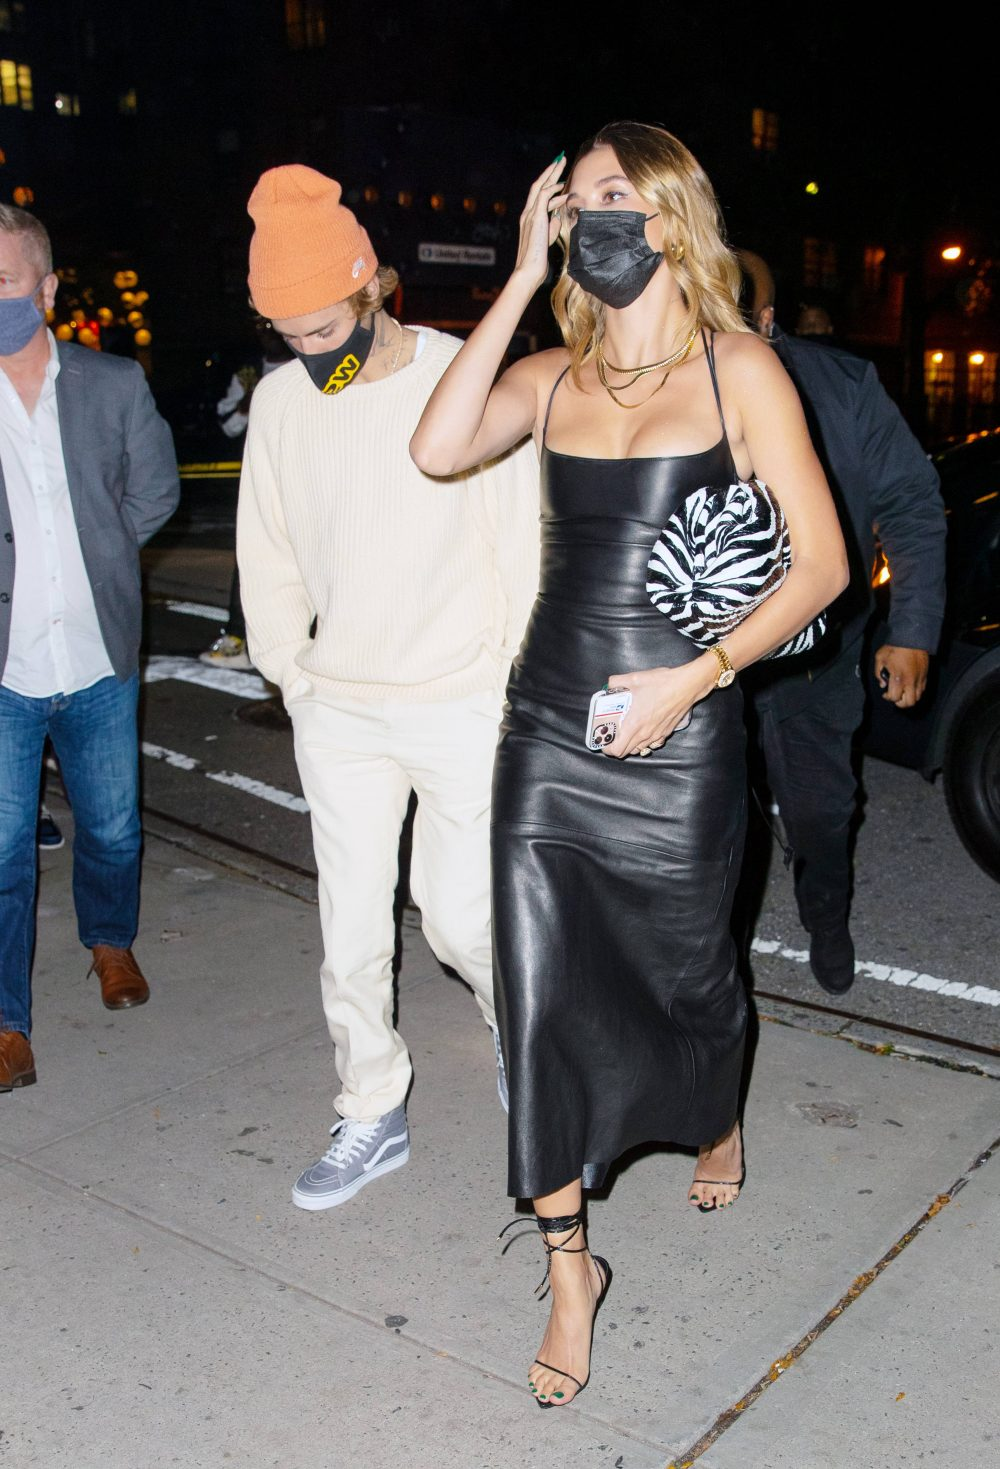 Justin Bieber and Hailey Bieber at SNL Afterparty in New York